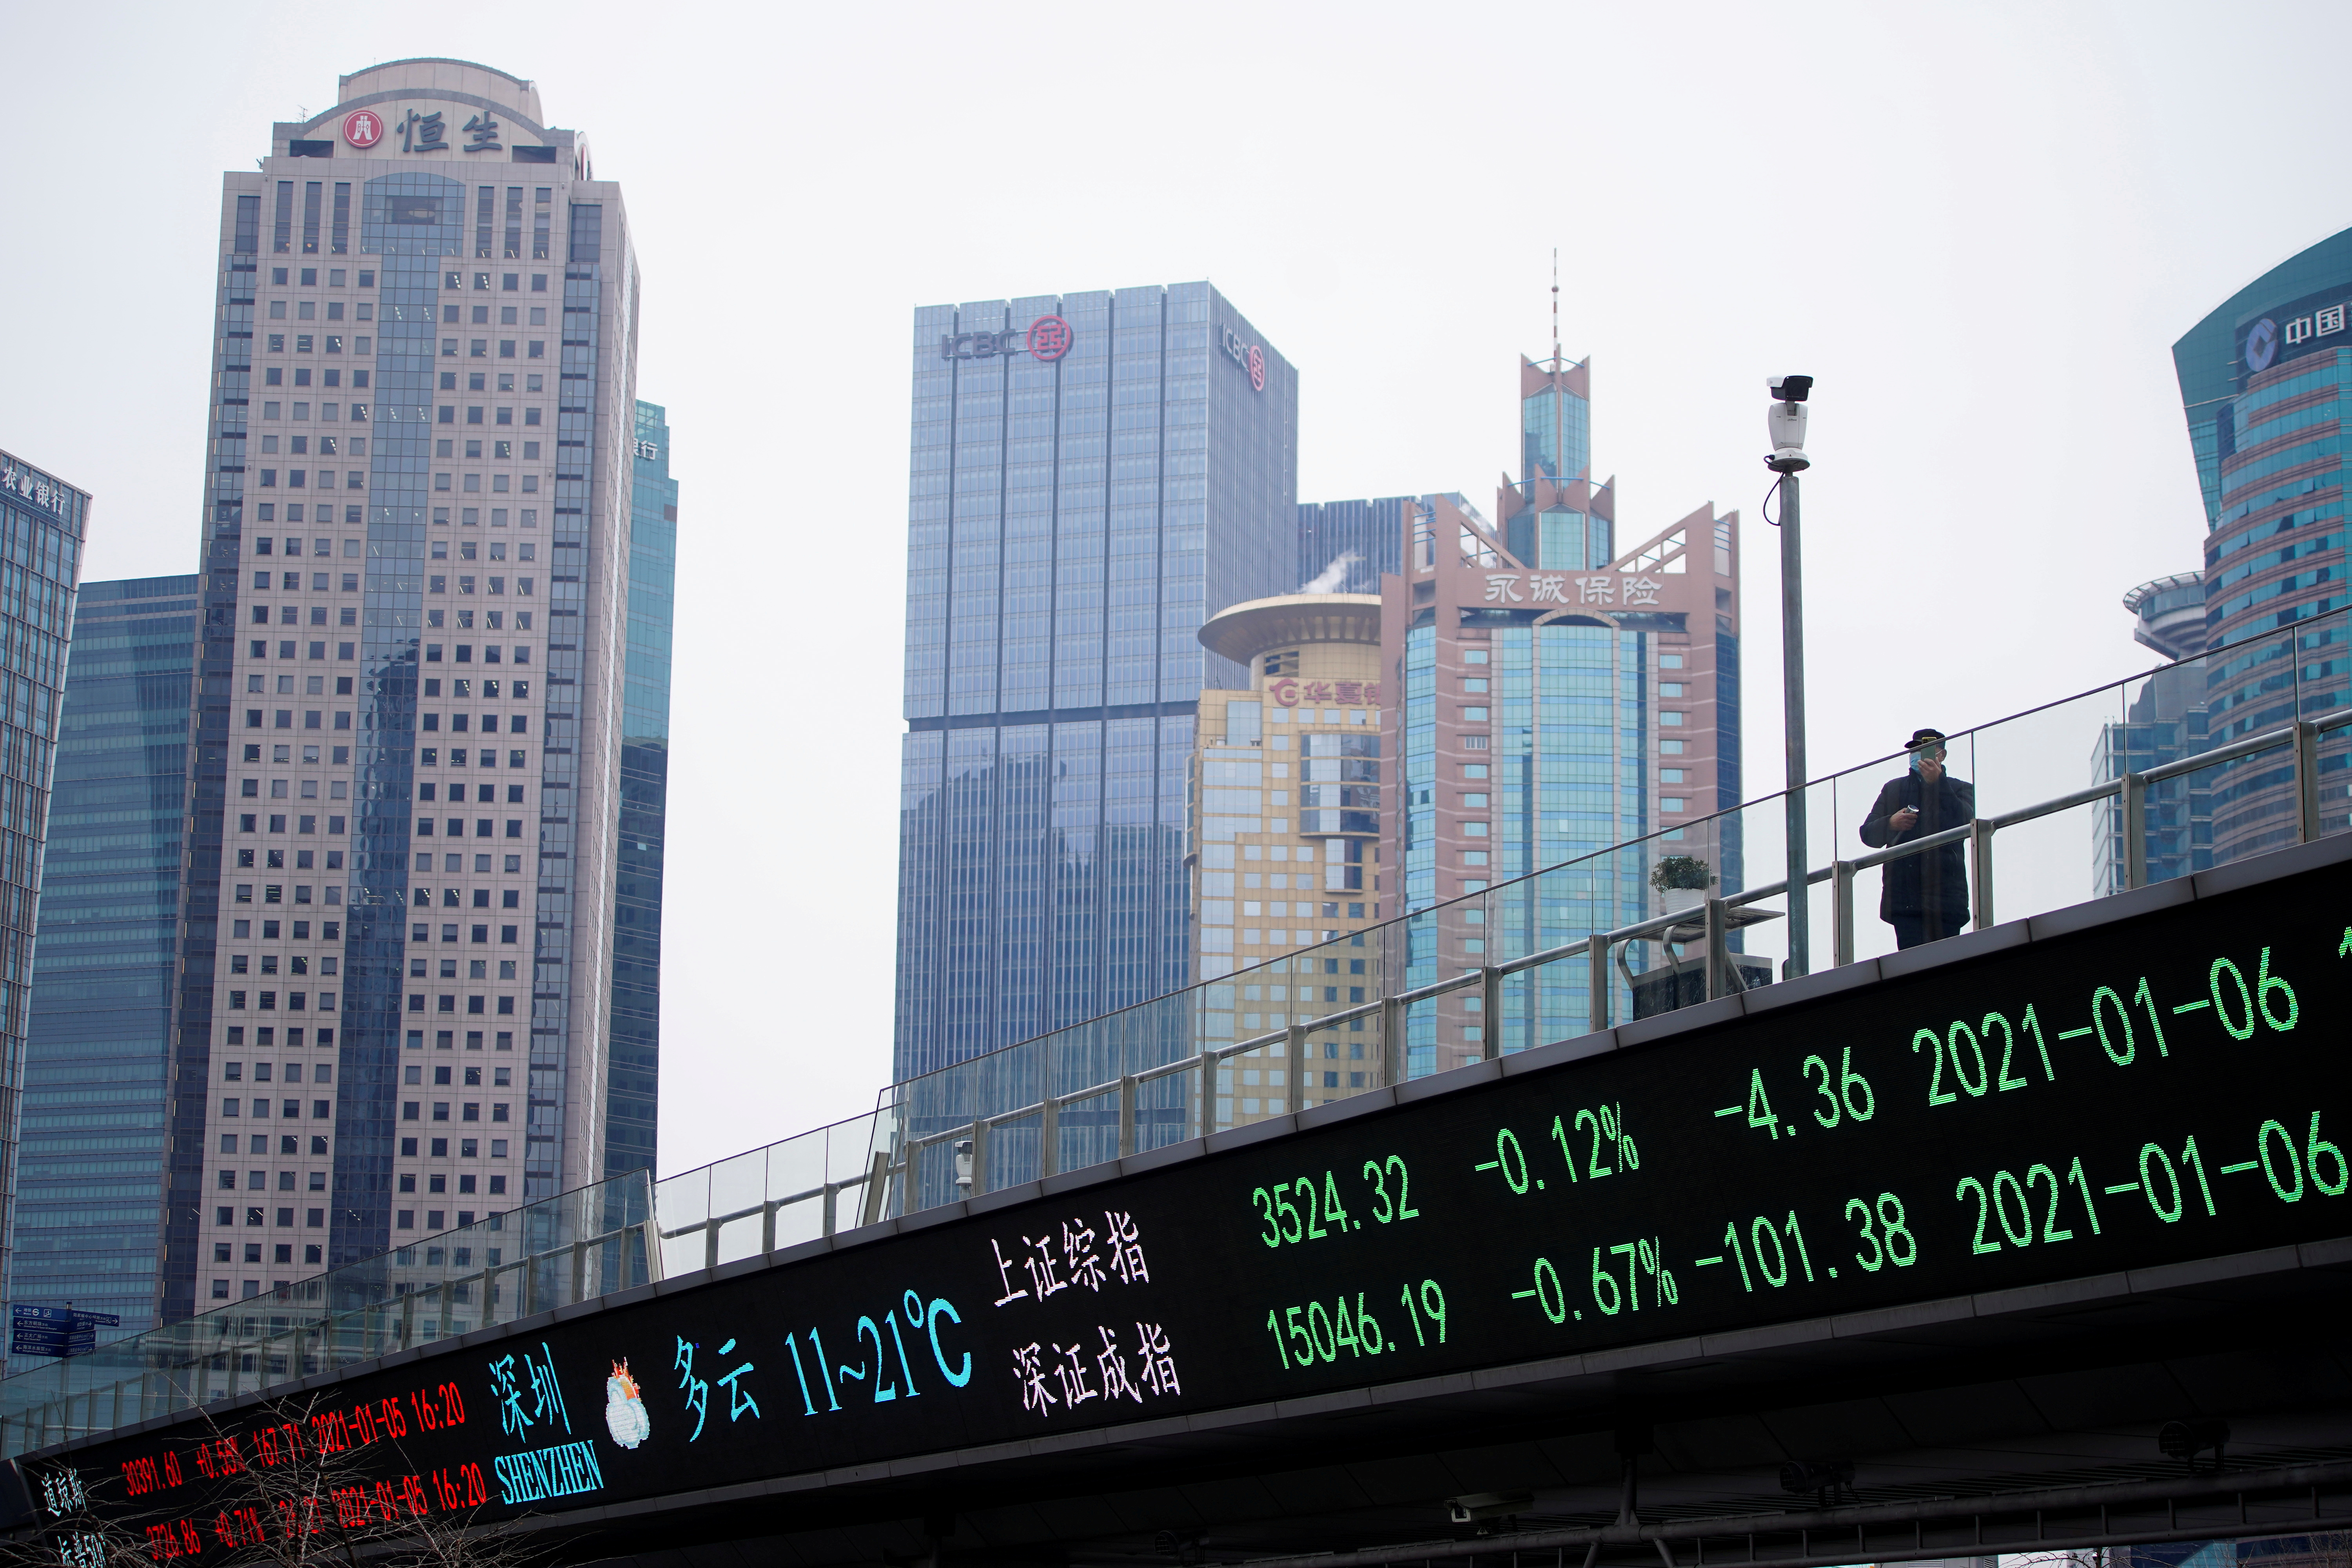 A man stands on an overpass with an electronic board showing Shanghai and Shenzhen stock indexes, at the Lujiazui financial district in Shanghai, China January 6, 2021. REUTERS/Aly Song